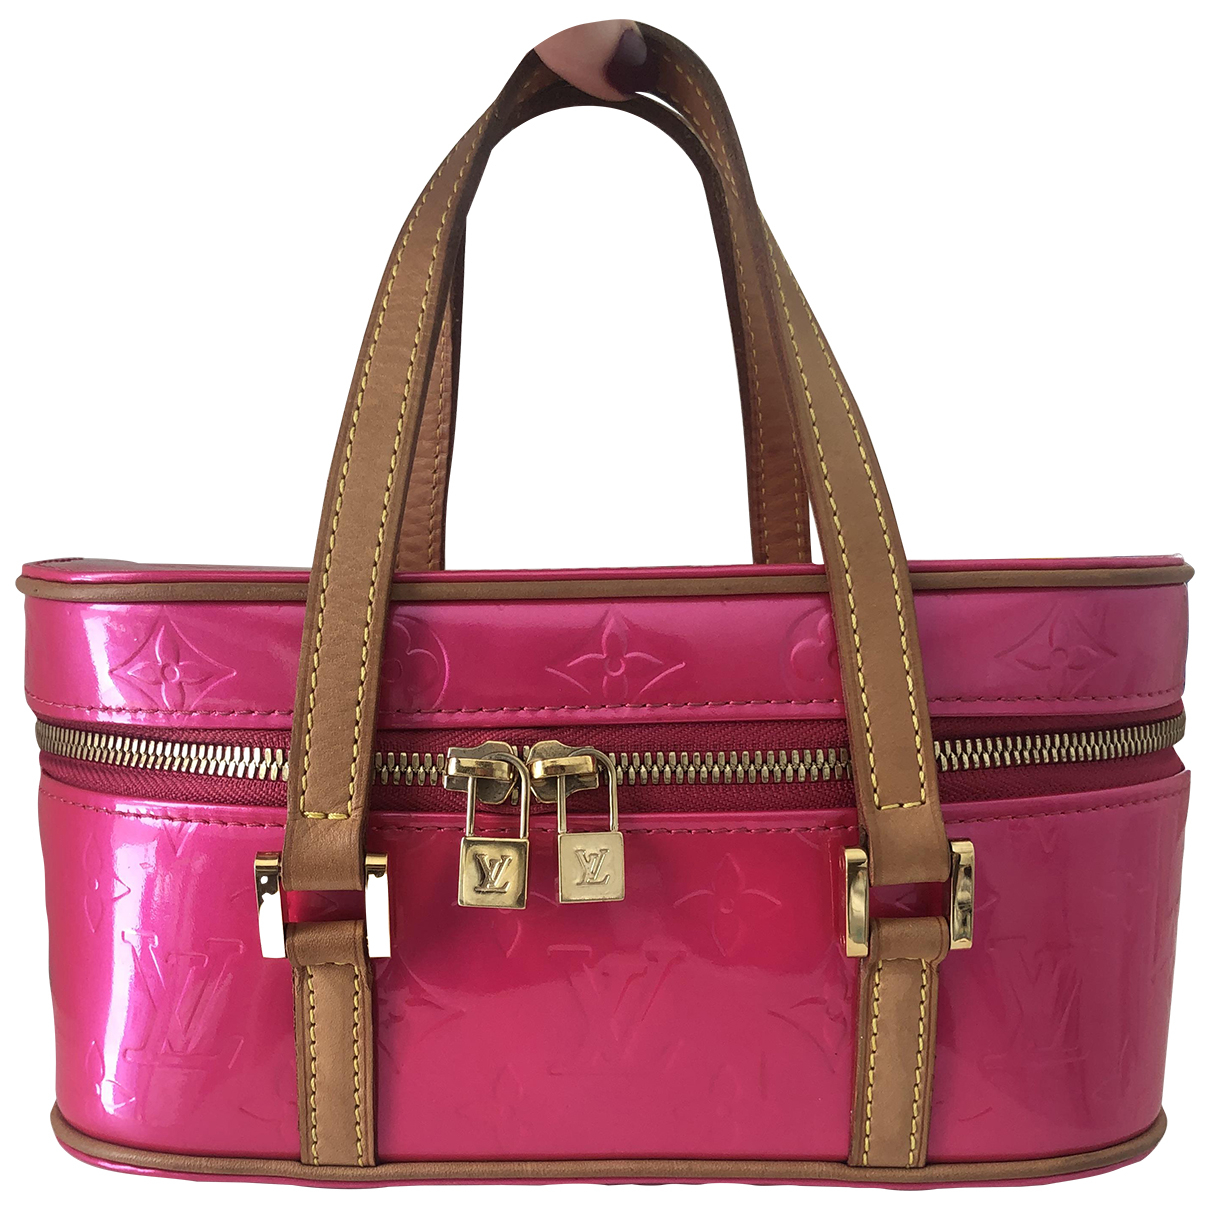 Louis Vuitton N Pink Patent leather Travel bag for Women N